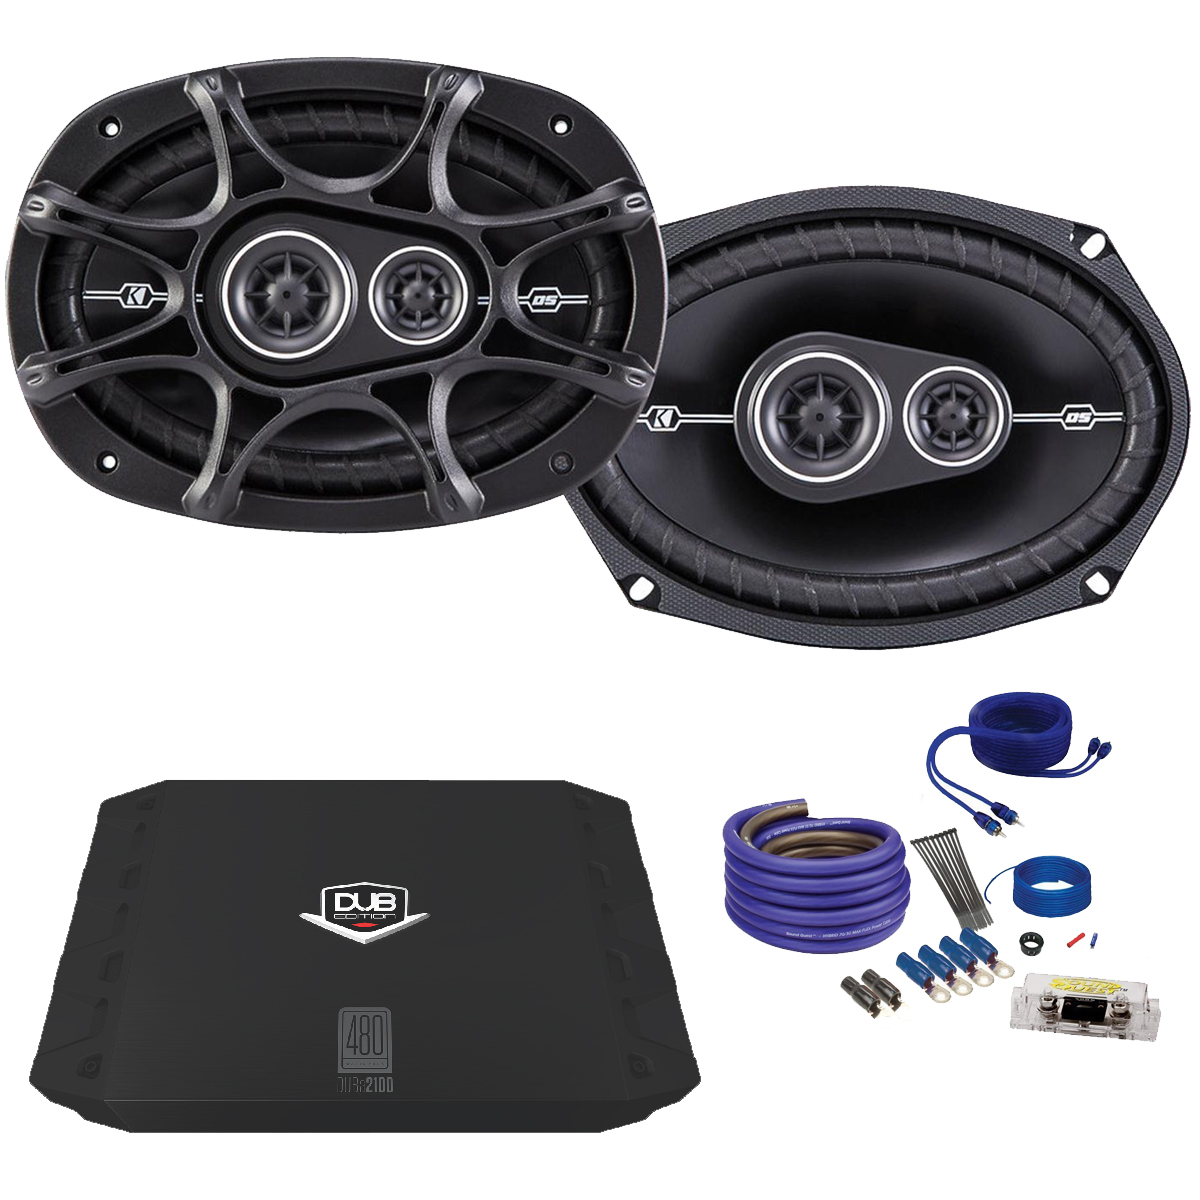 kicker dsc 6x9 speaker package dsc 6x9s dub 200w 2. Black Bedroom Furniture Sets. Home Design Ideas